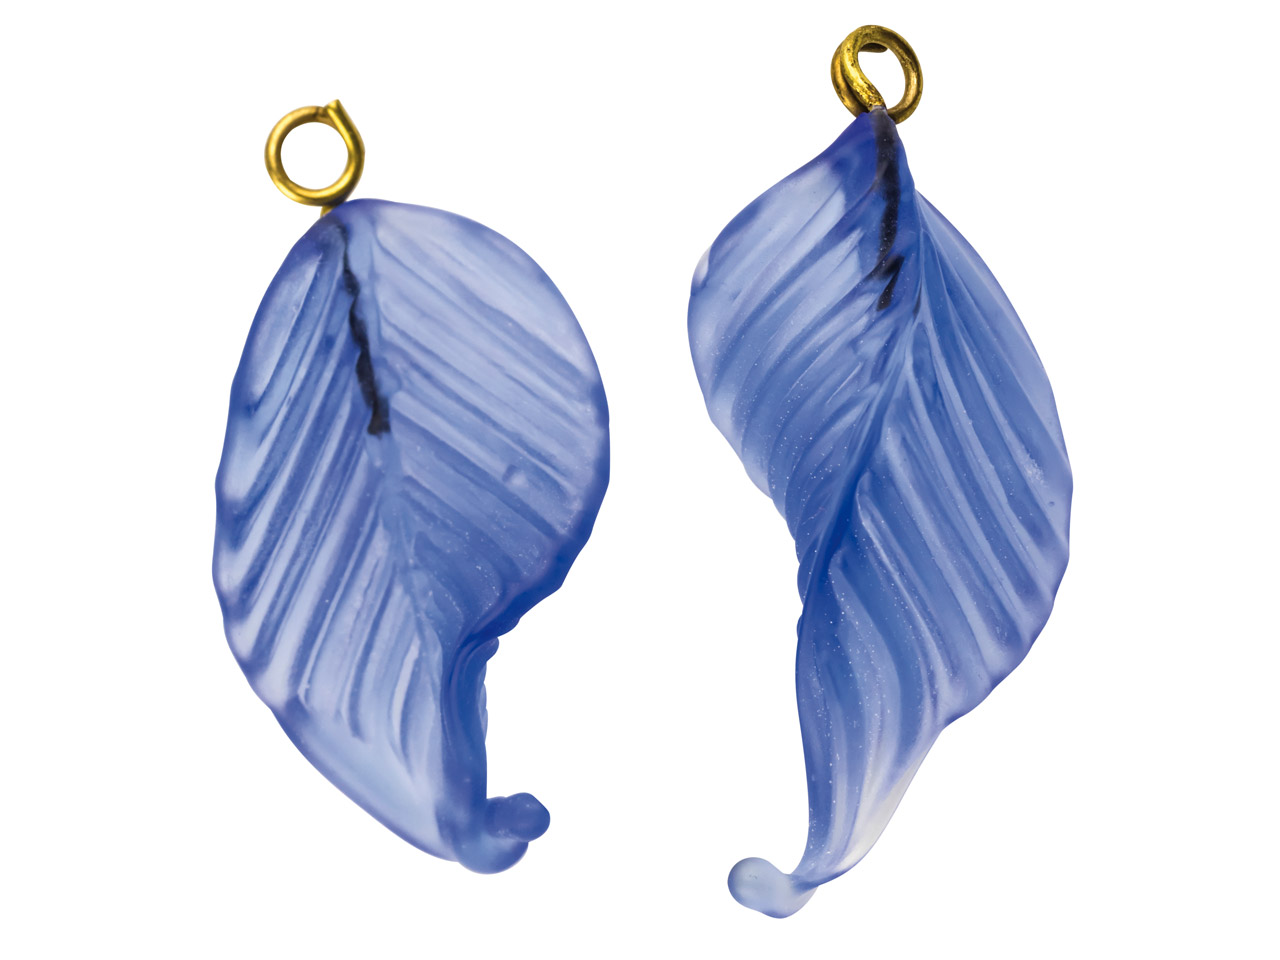 Lamp Glass Leaves, Frosted Light    Sapphire With Loop, 23mm, Pack of 2